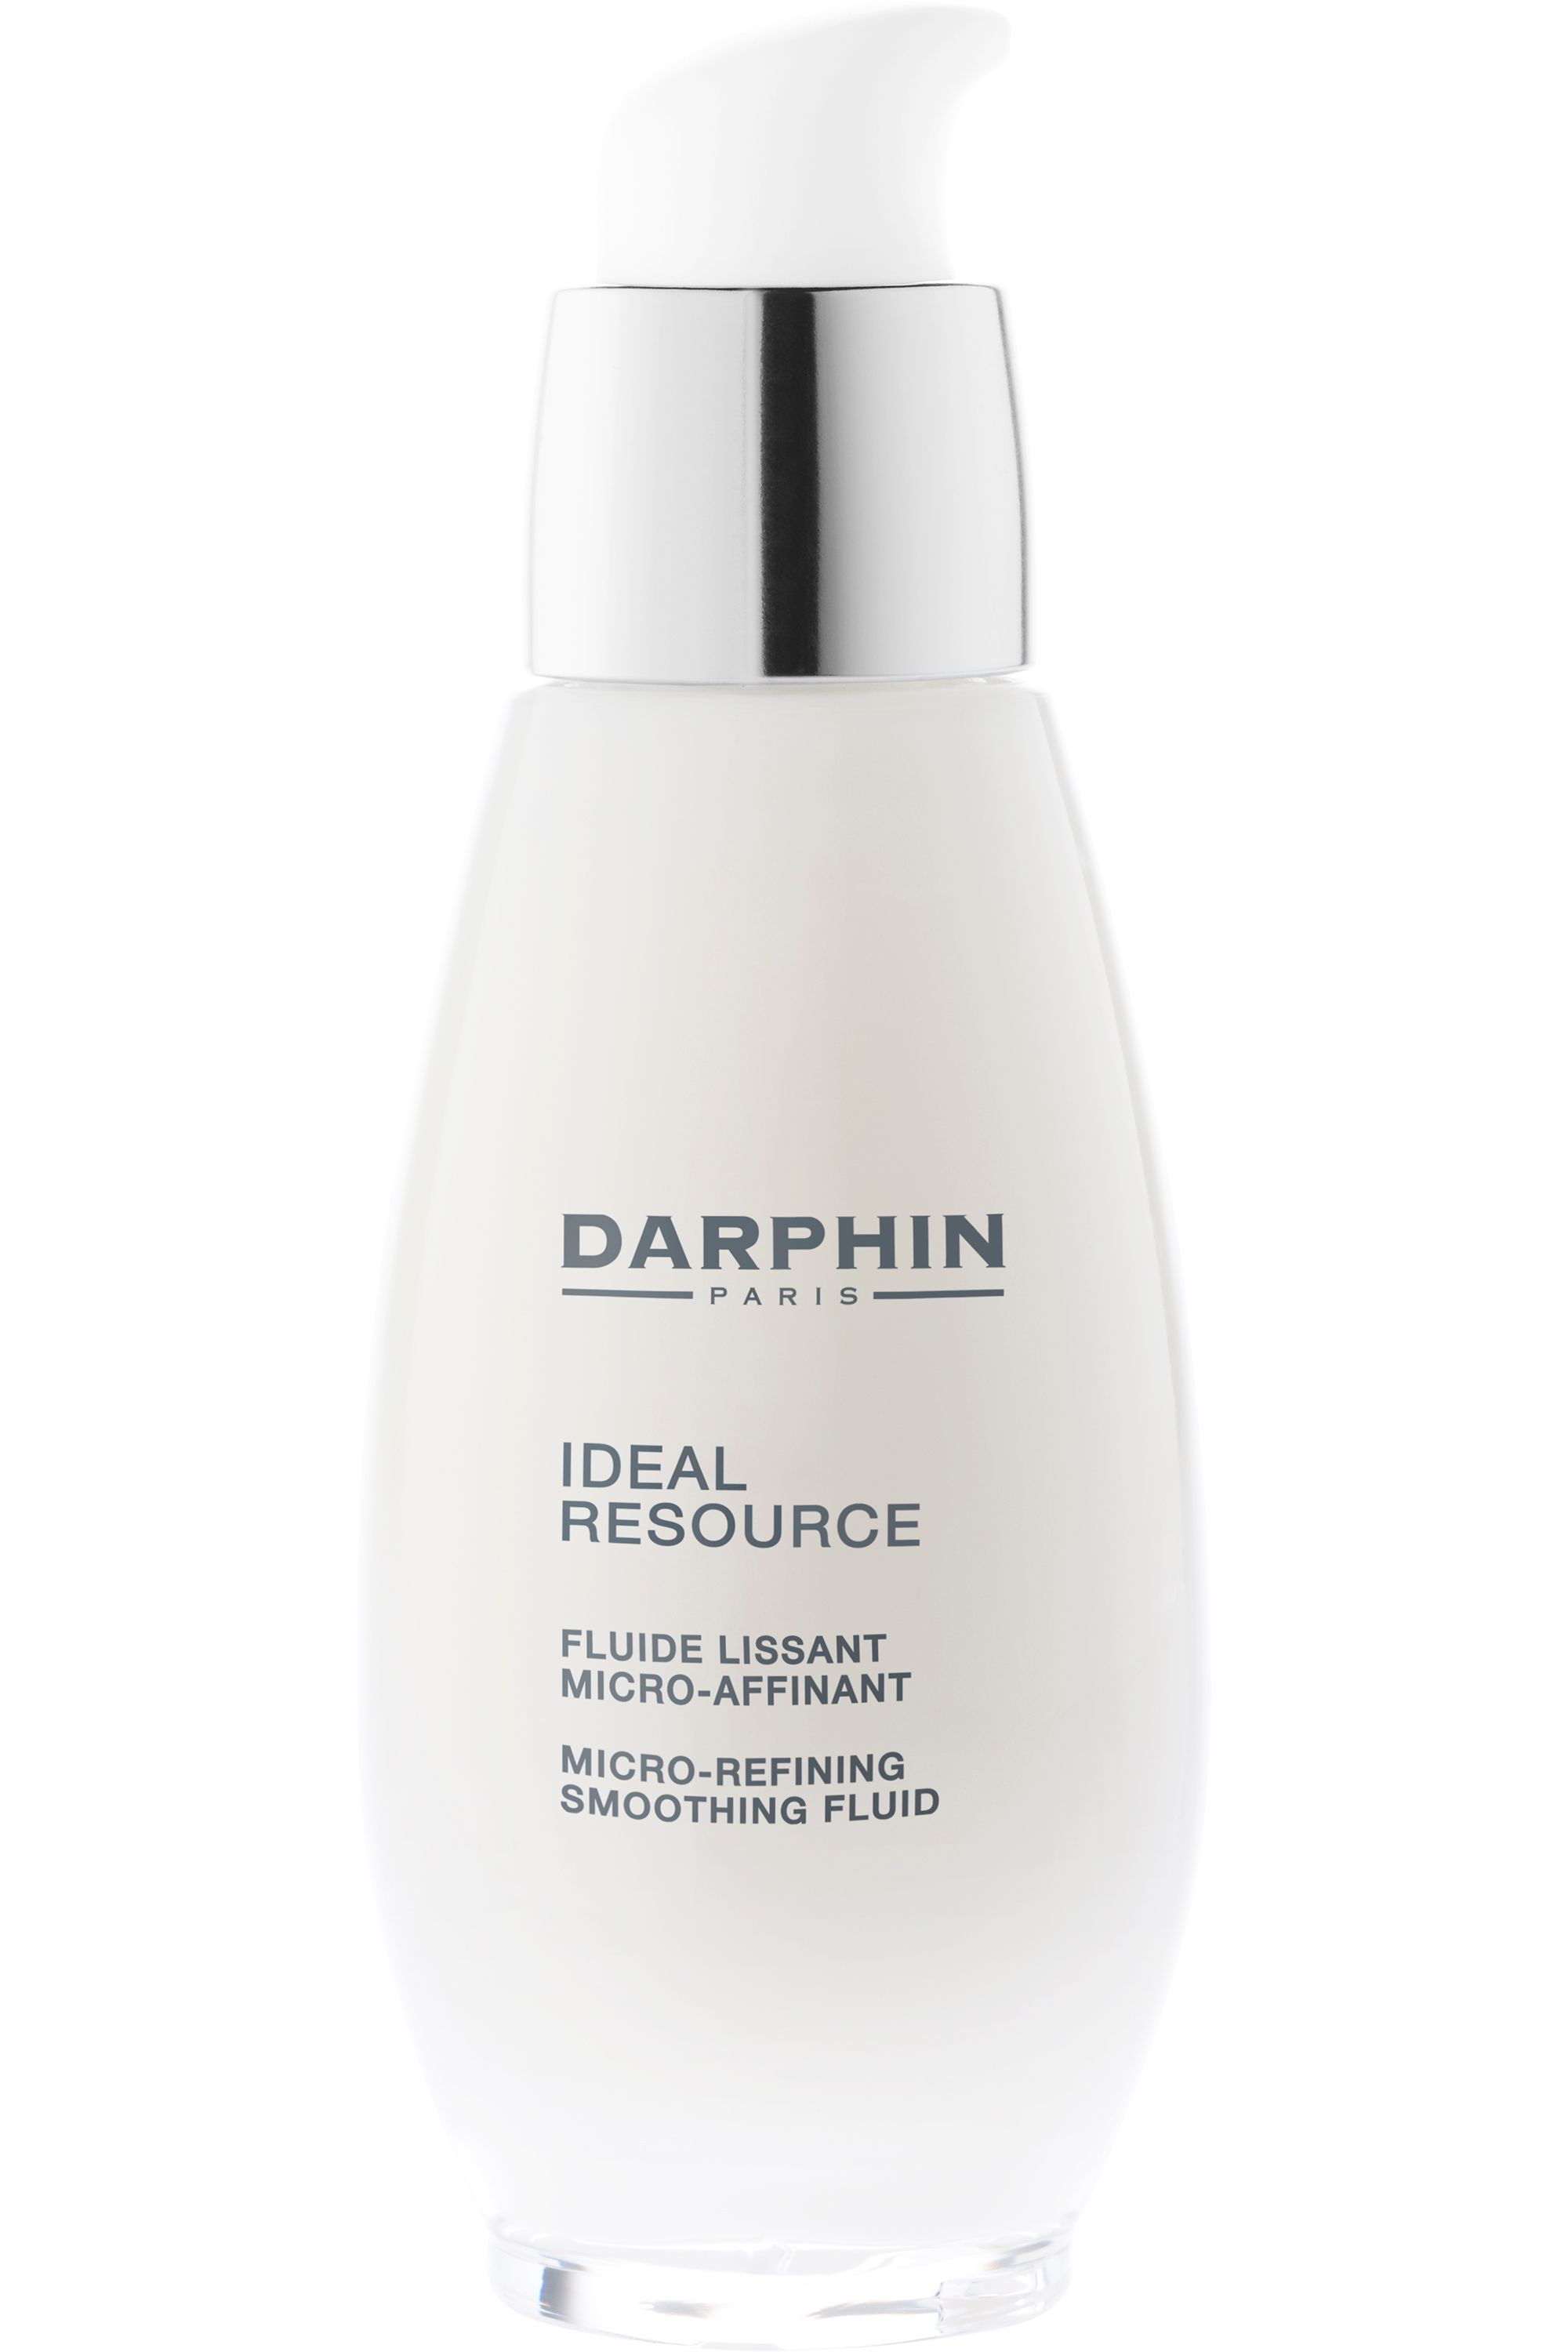 Blissim : Darphin - Ideal Resource Fluide Lissant Micro-Affinant - Ideal Resource Fluide Lissant Micro-Affinant